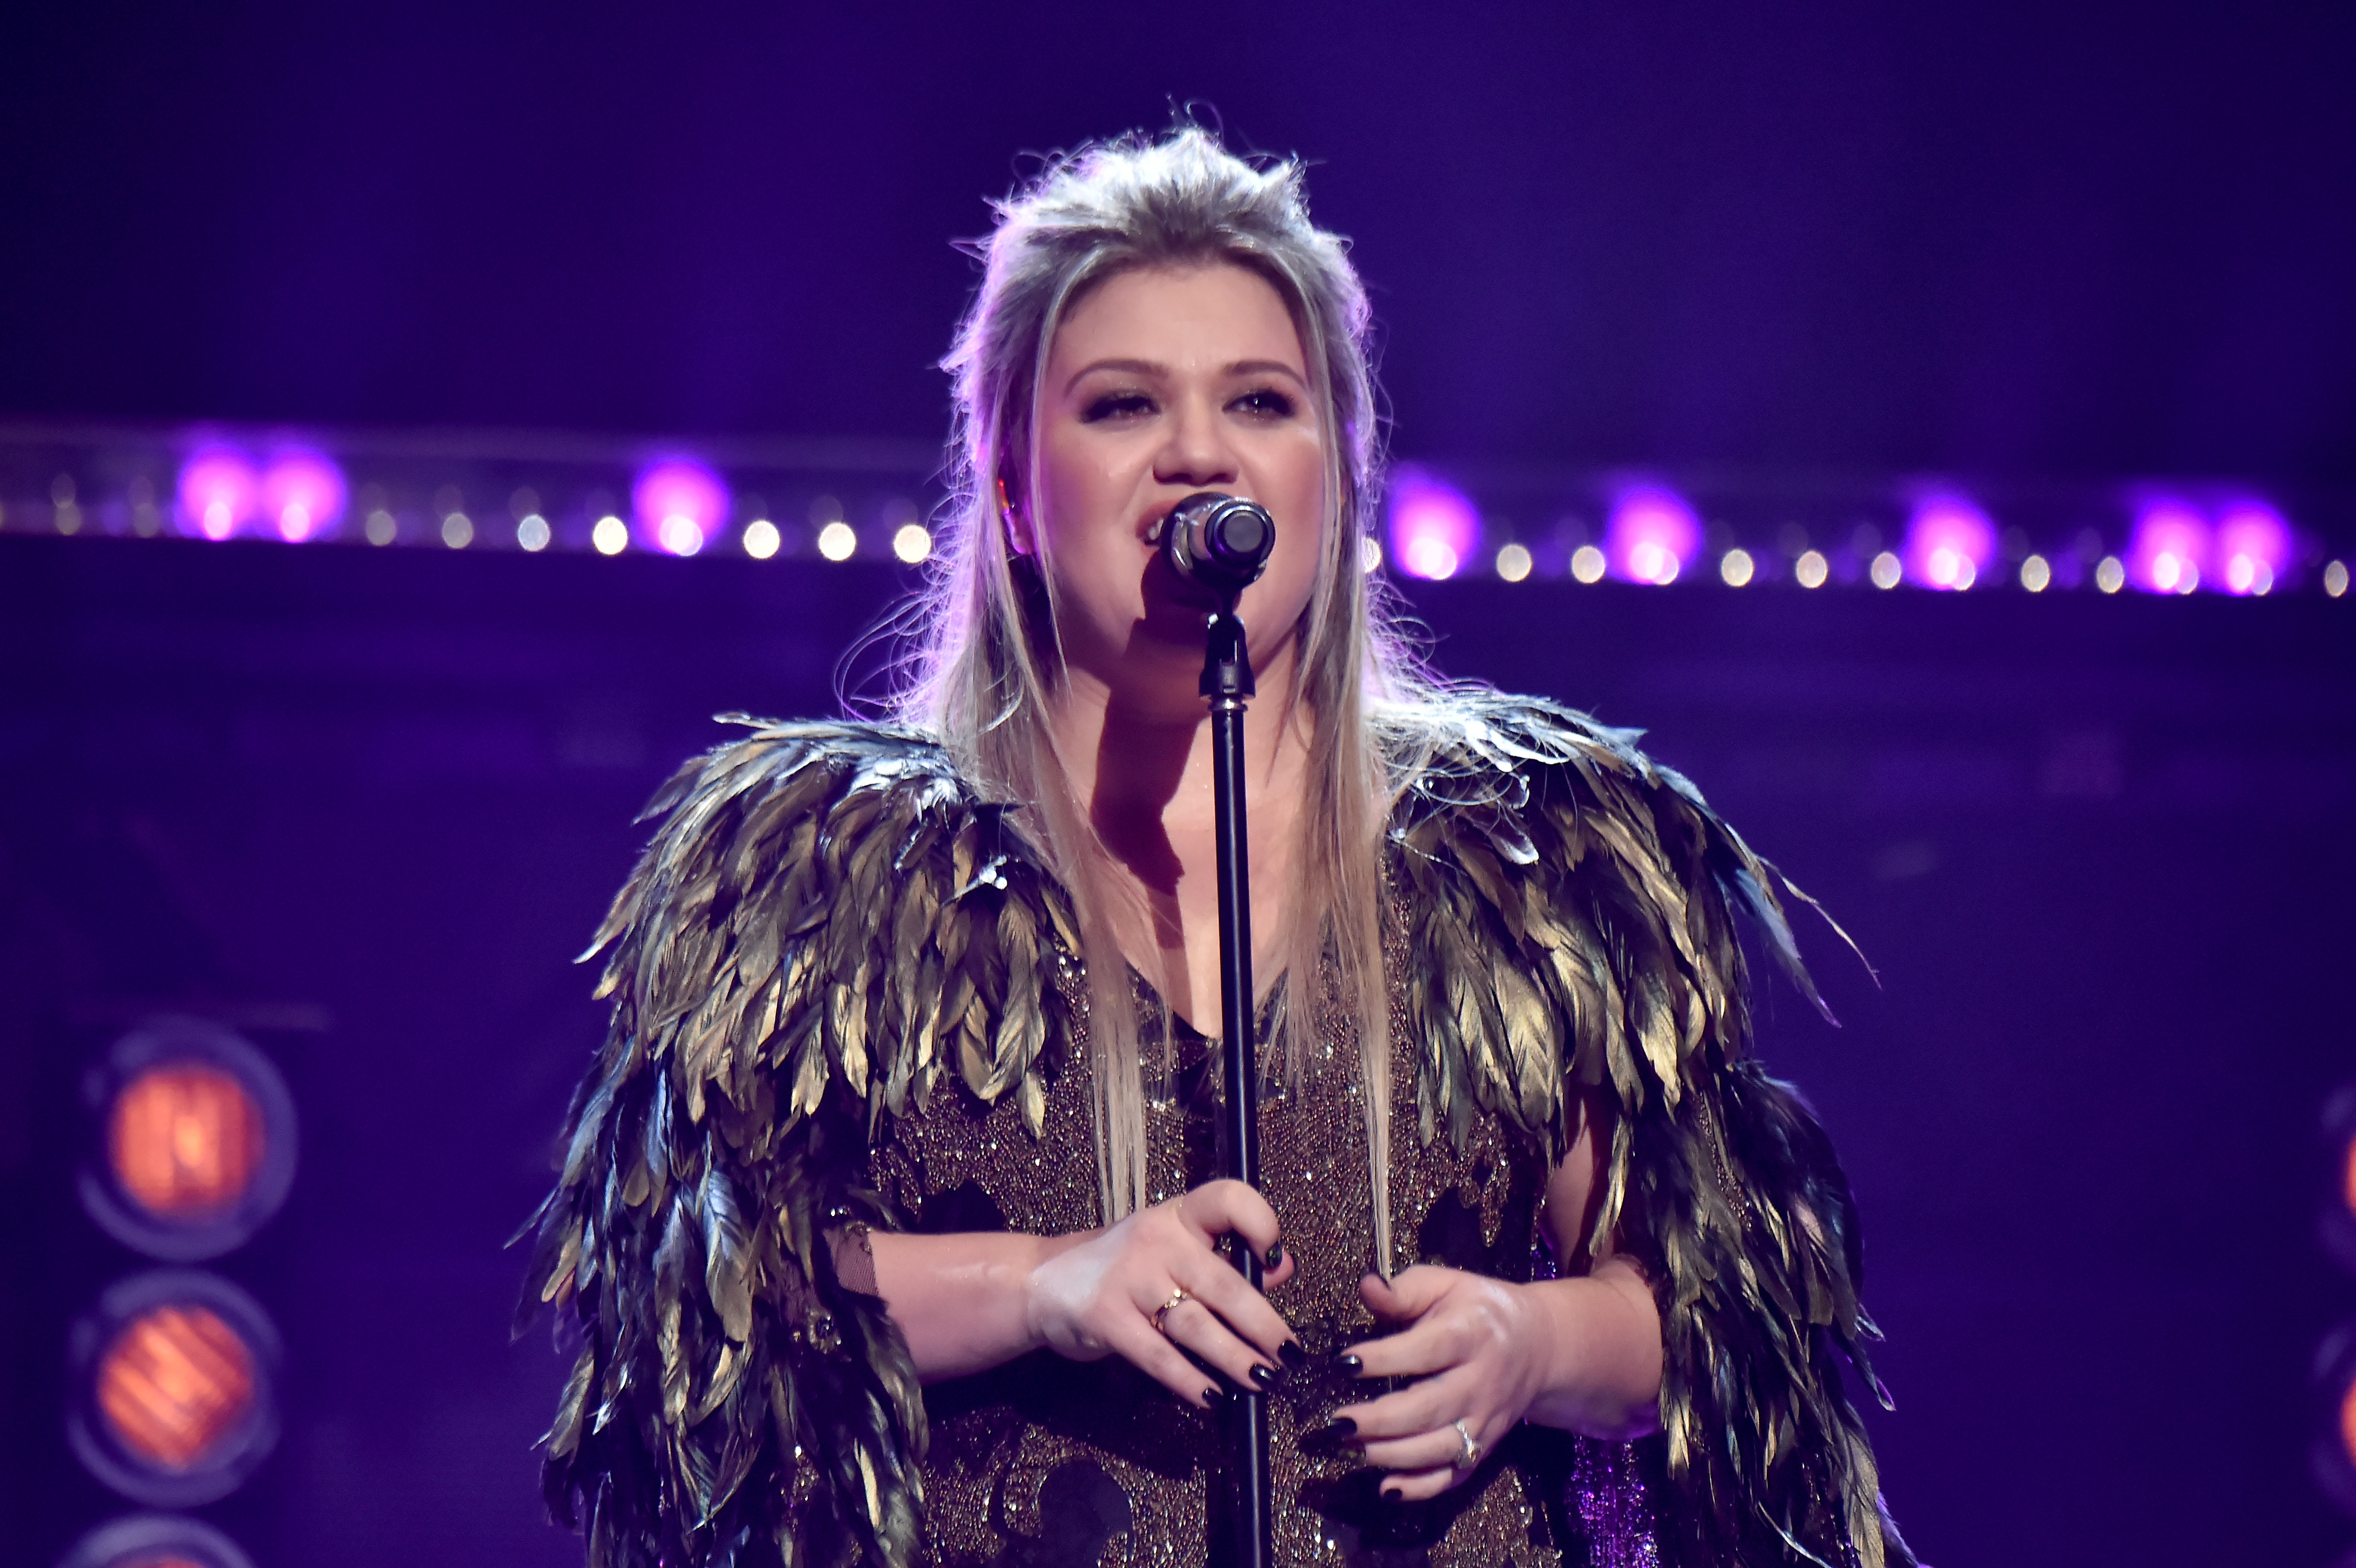 LOS ANGELES, CA - NOVEMBER 19:  Kelly Clarkson onstage during the 2017 American Music Awards at Microsoft Theater on November 19, 2017 in Los Angeles, California.  (Photo by Jeff Kravitz/AMA2017/FilmMagic for dcp)